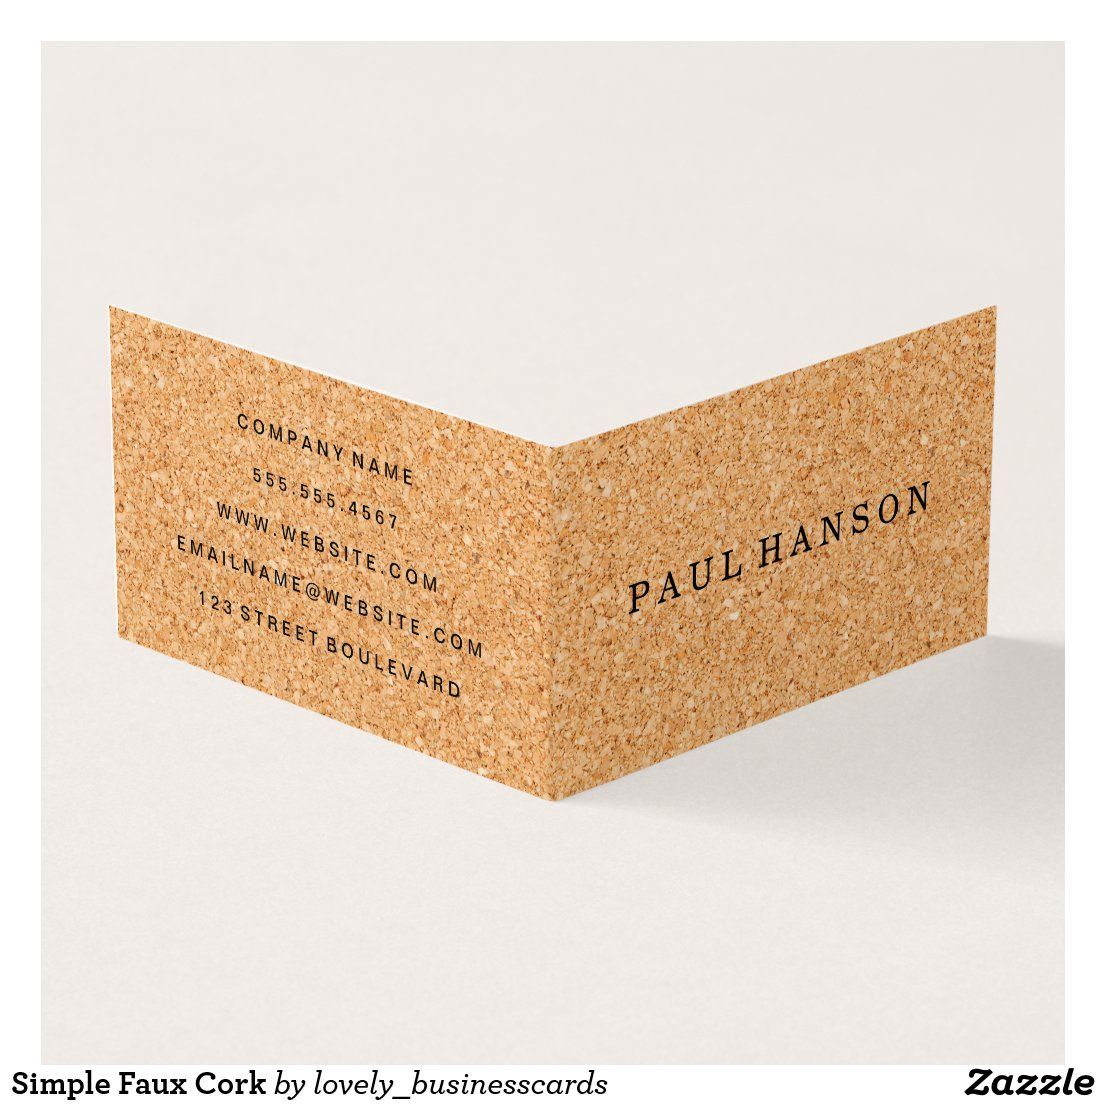 Simple Faux Cork Business Card Zazzle Com In 2021 Business Cards Simple Folded Business Cards Professional Business Cards